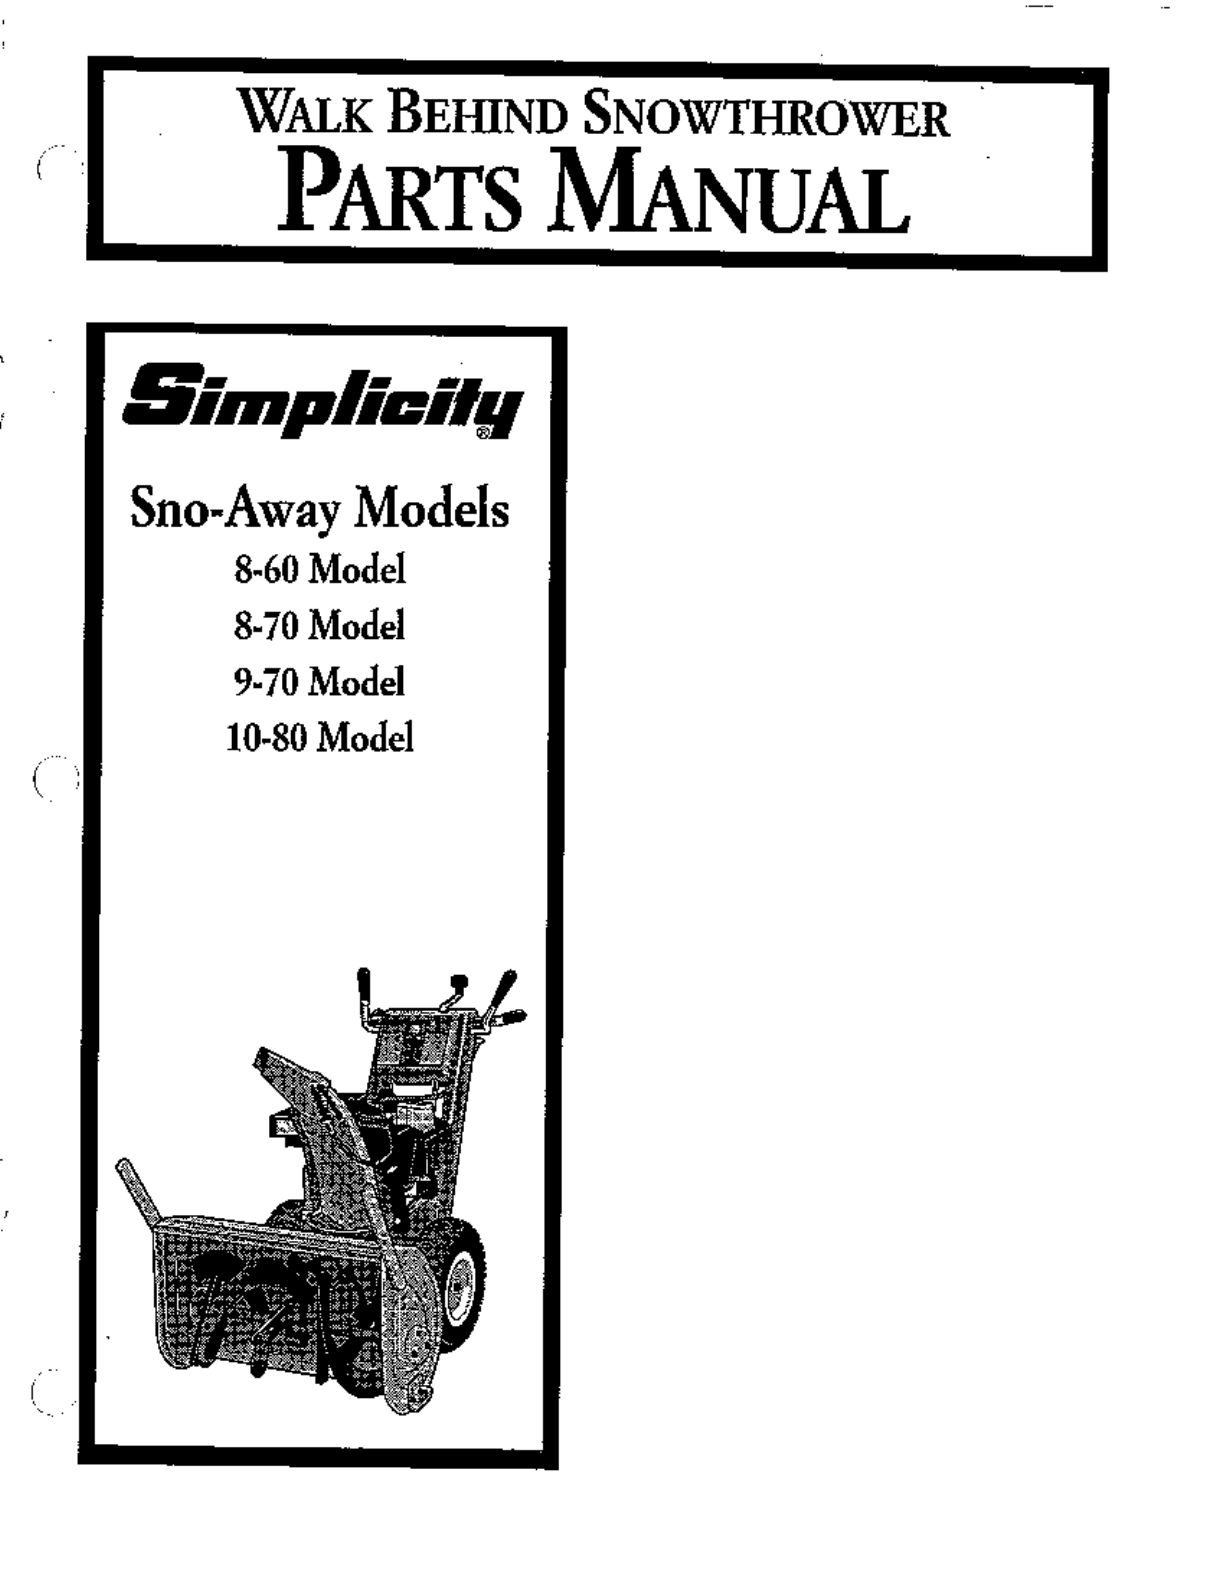 simplicity snow blower 10 80 user guide manualsonline com rh lawnandgarden manualsonline com Simplicity 755 Parts Simplicity 755 Parts